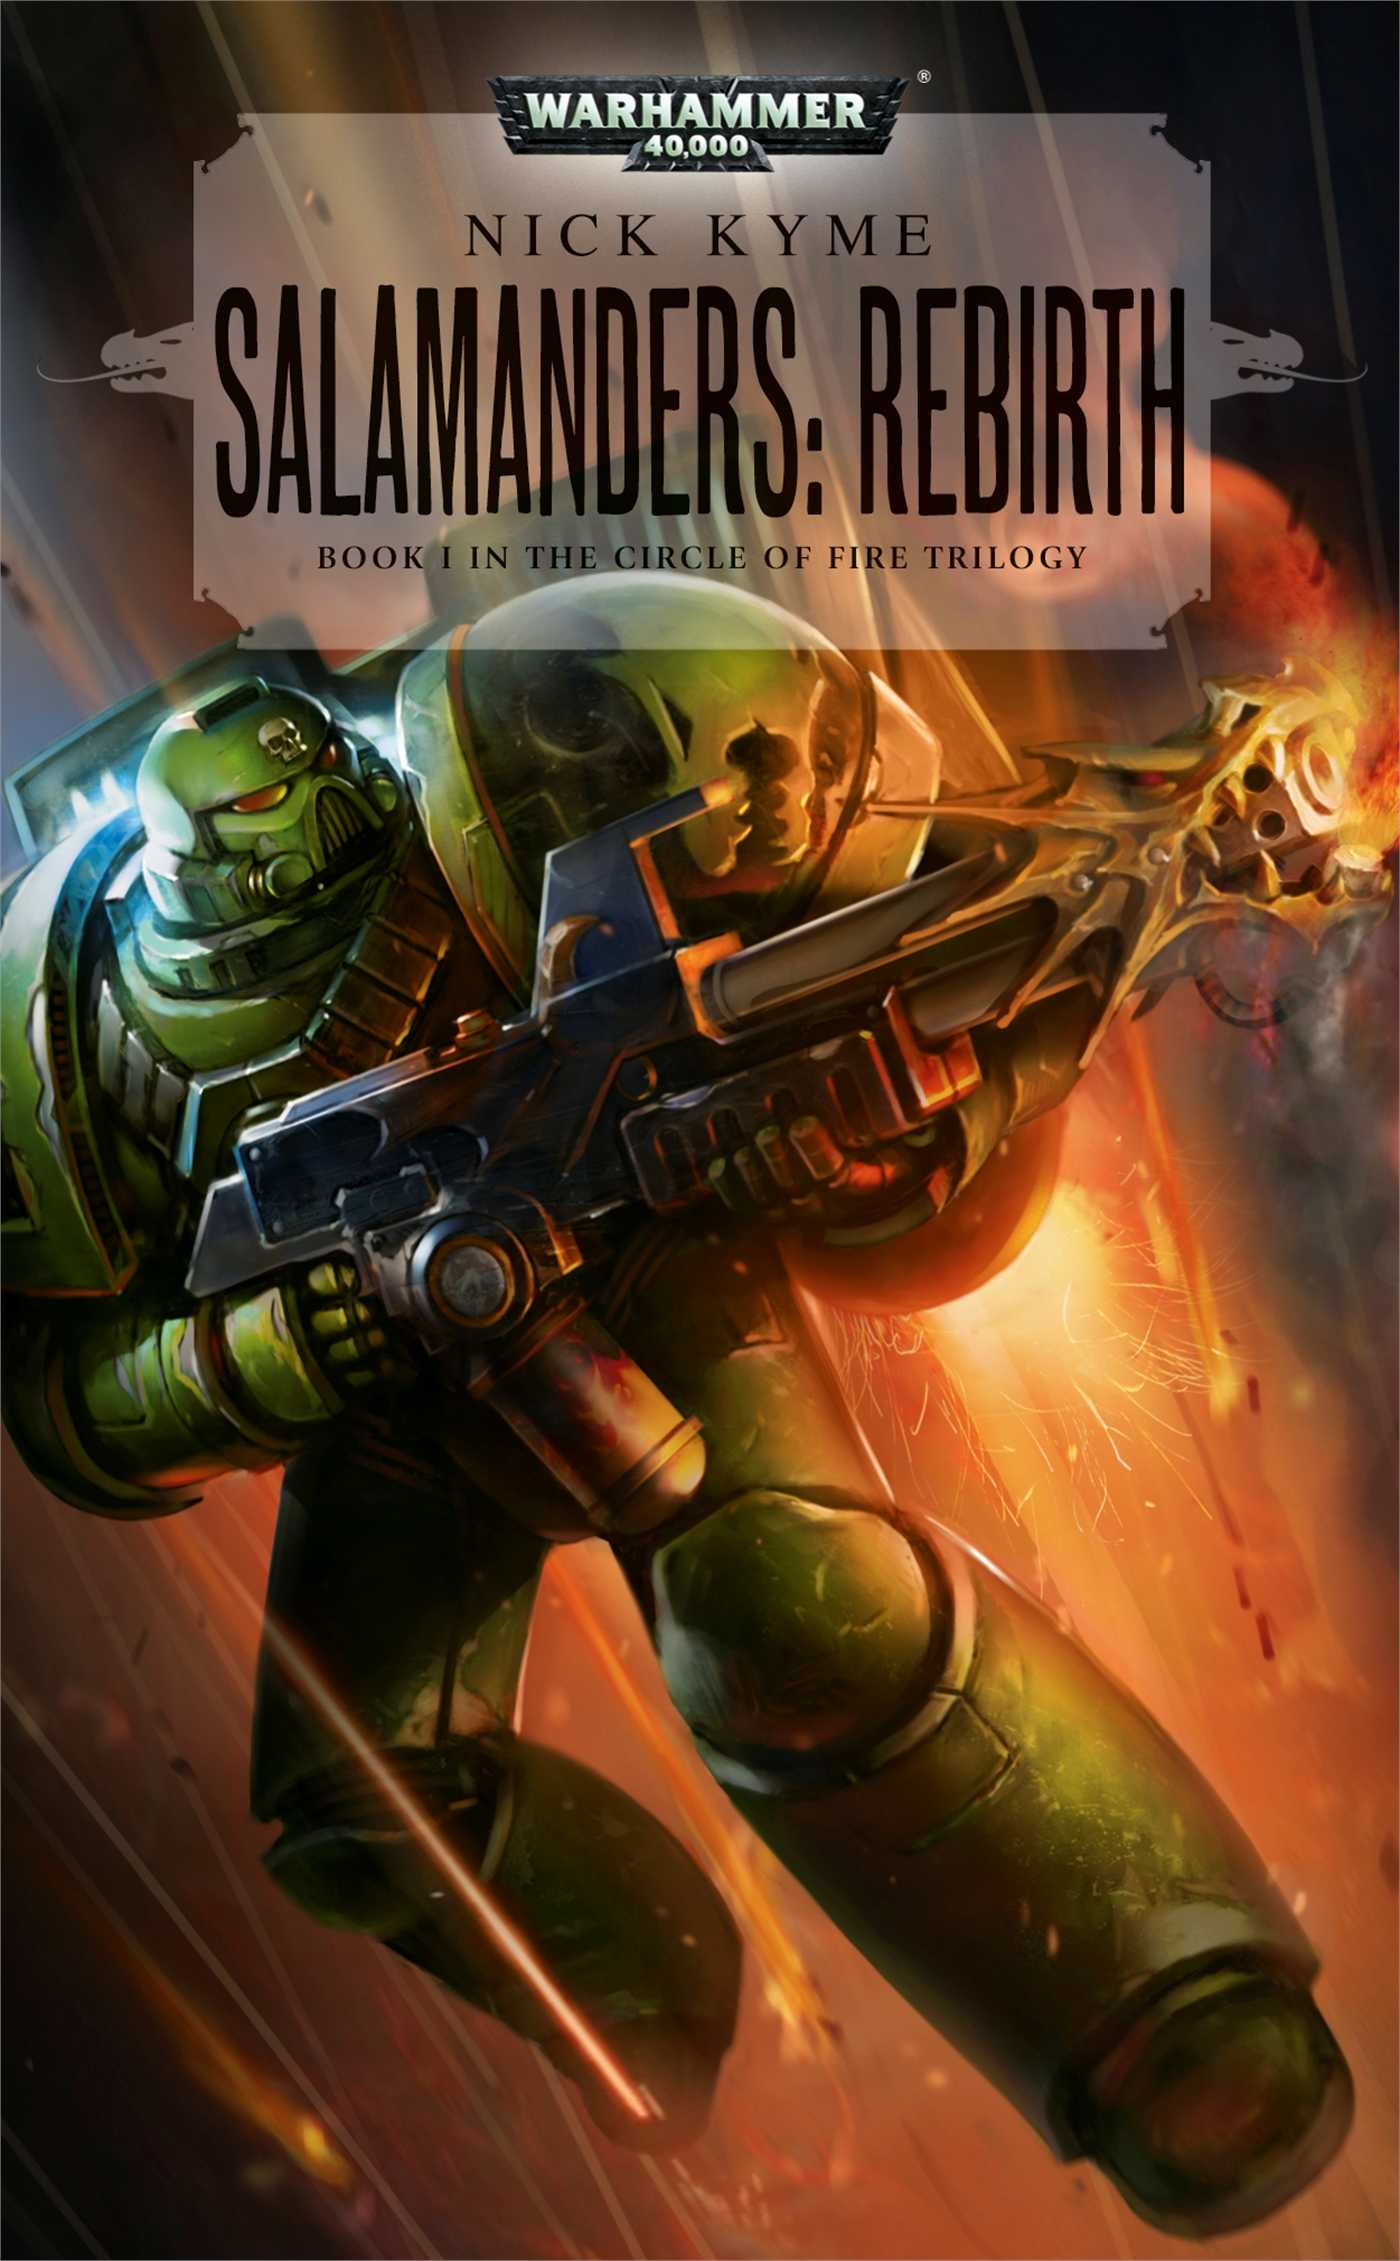 Salamanders-rebirth-9781849706742_hr